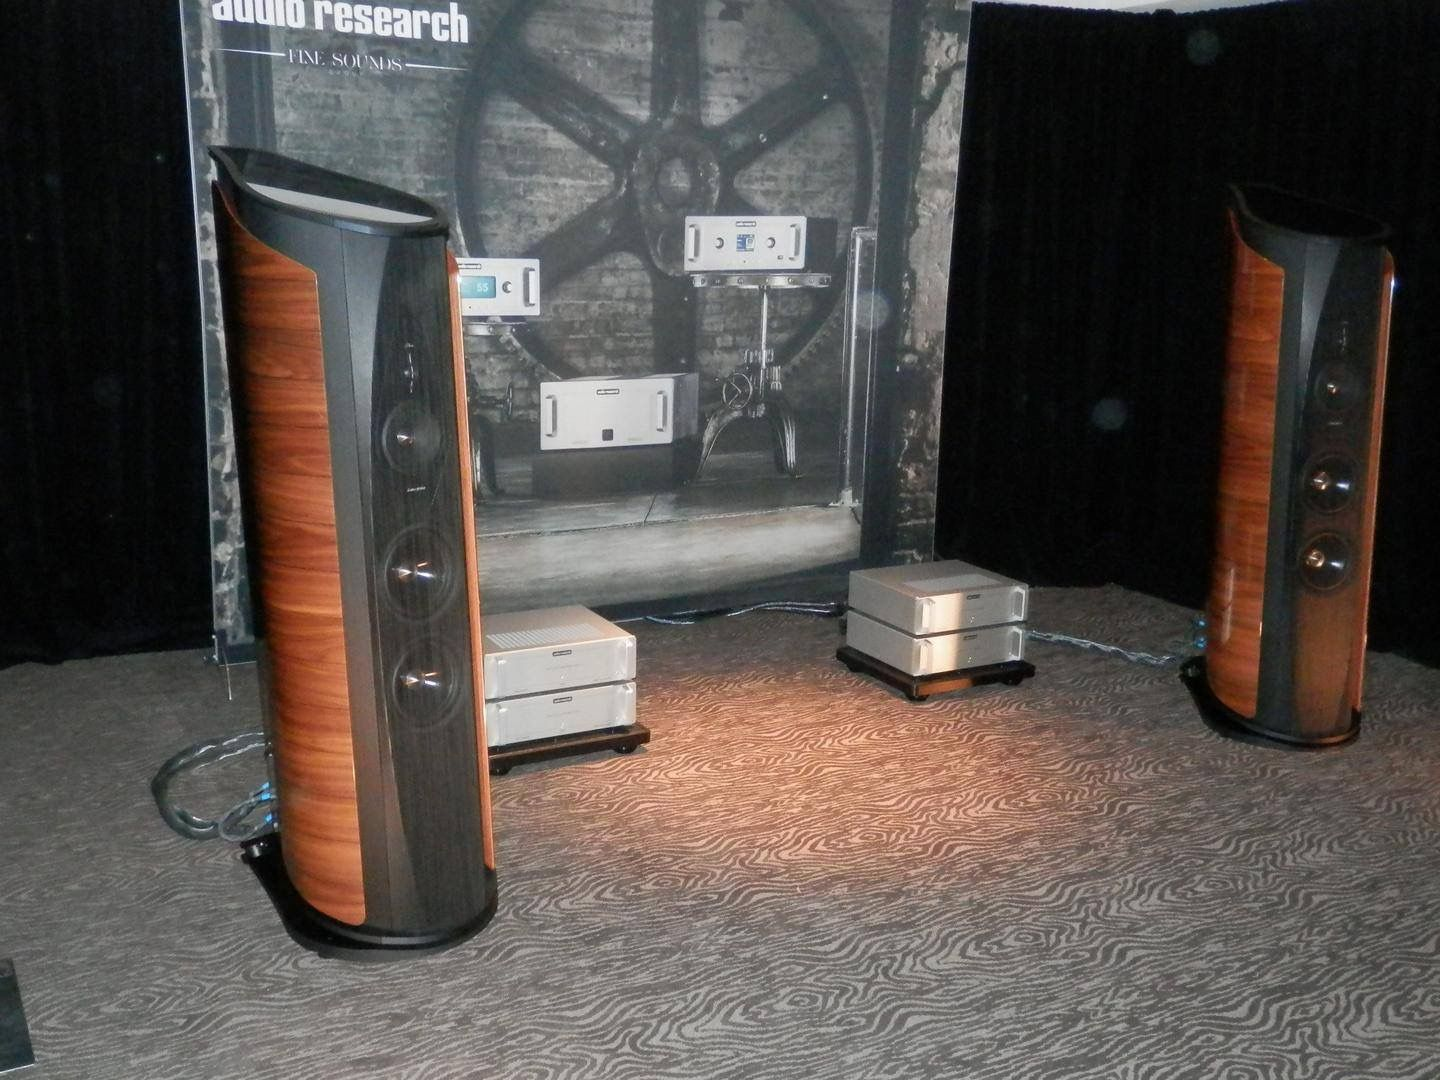 Sonus faber Aida speakers with Audio Research Corporation electronics